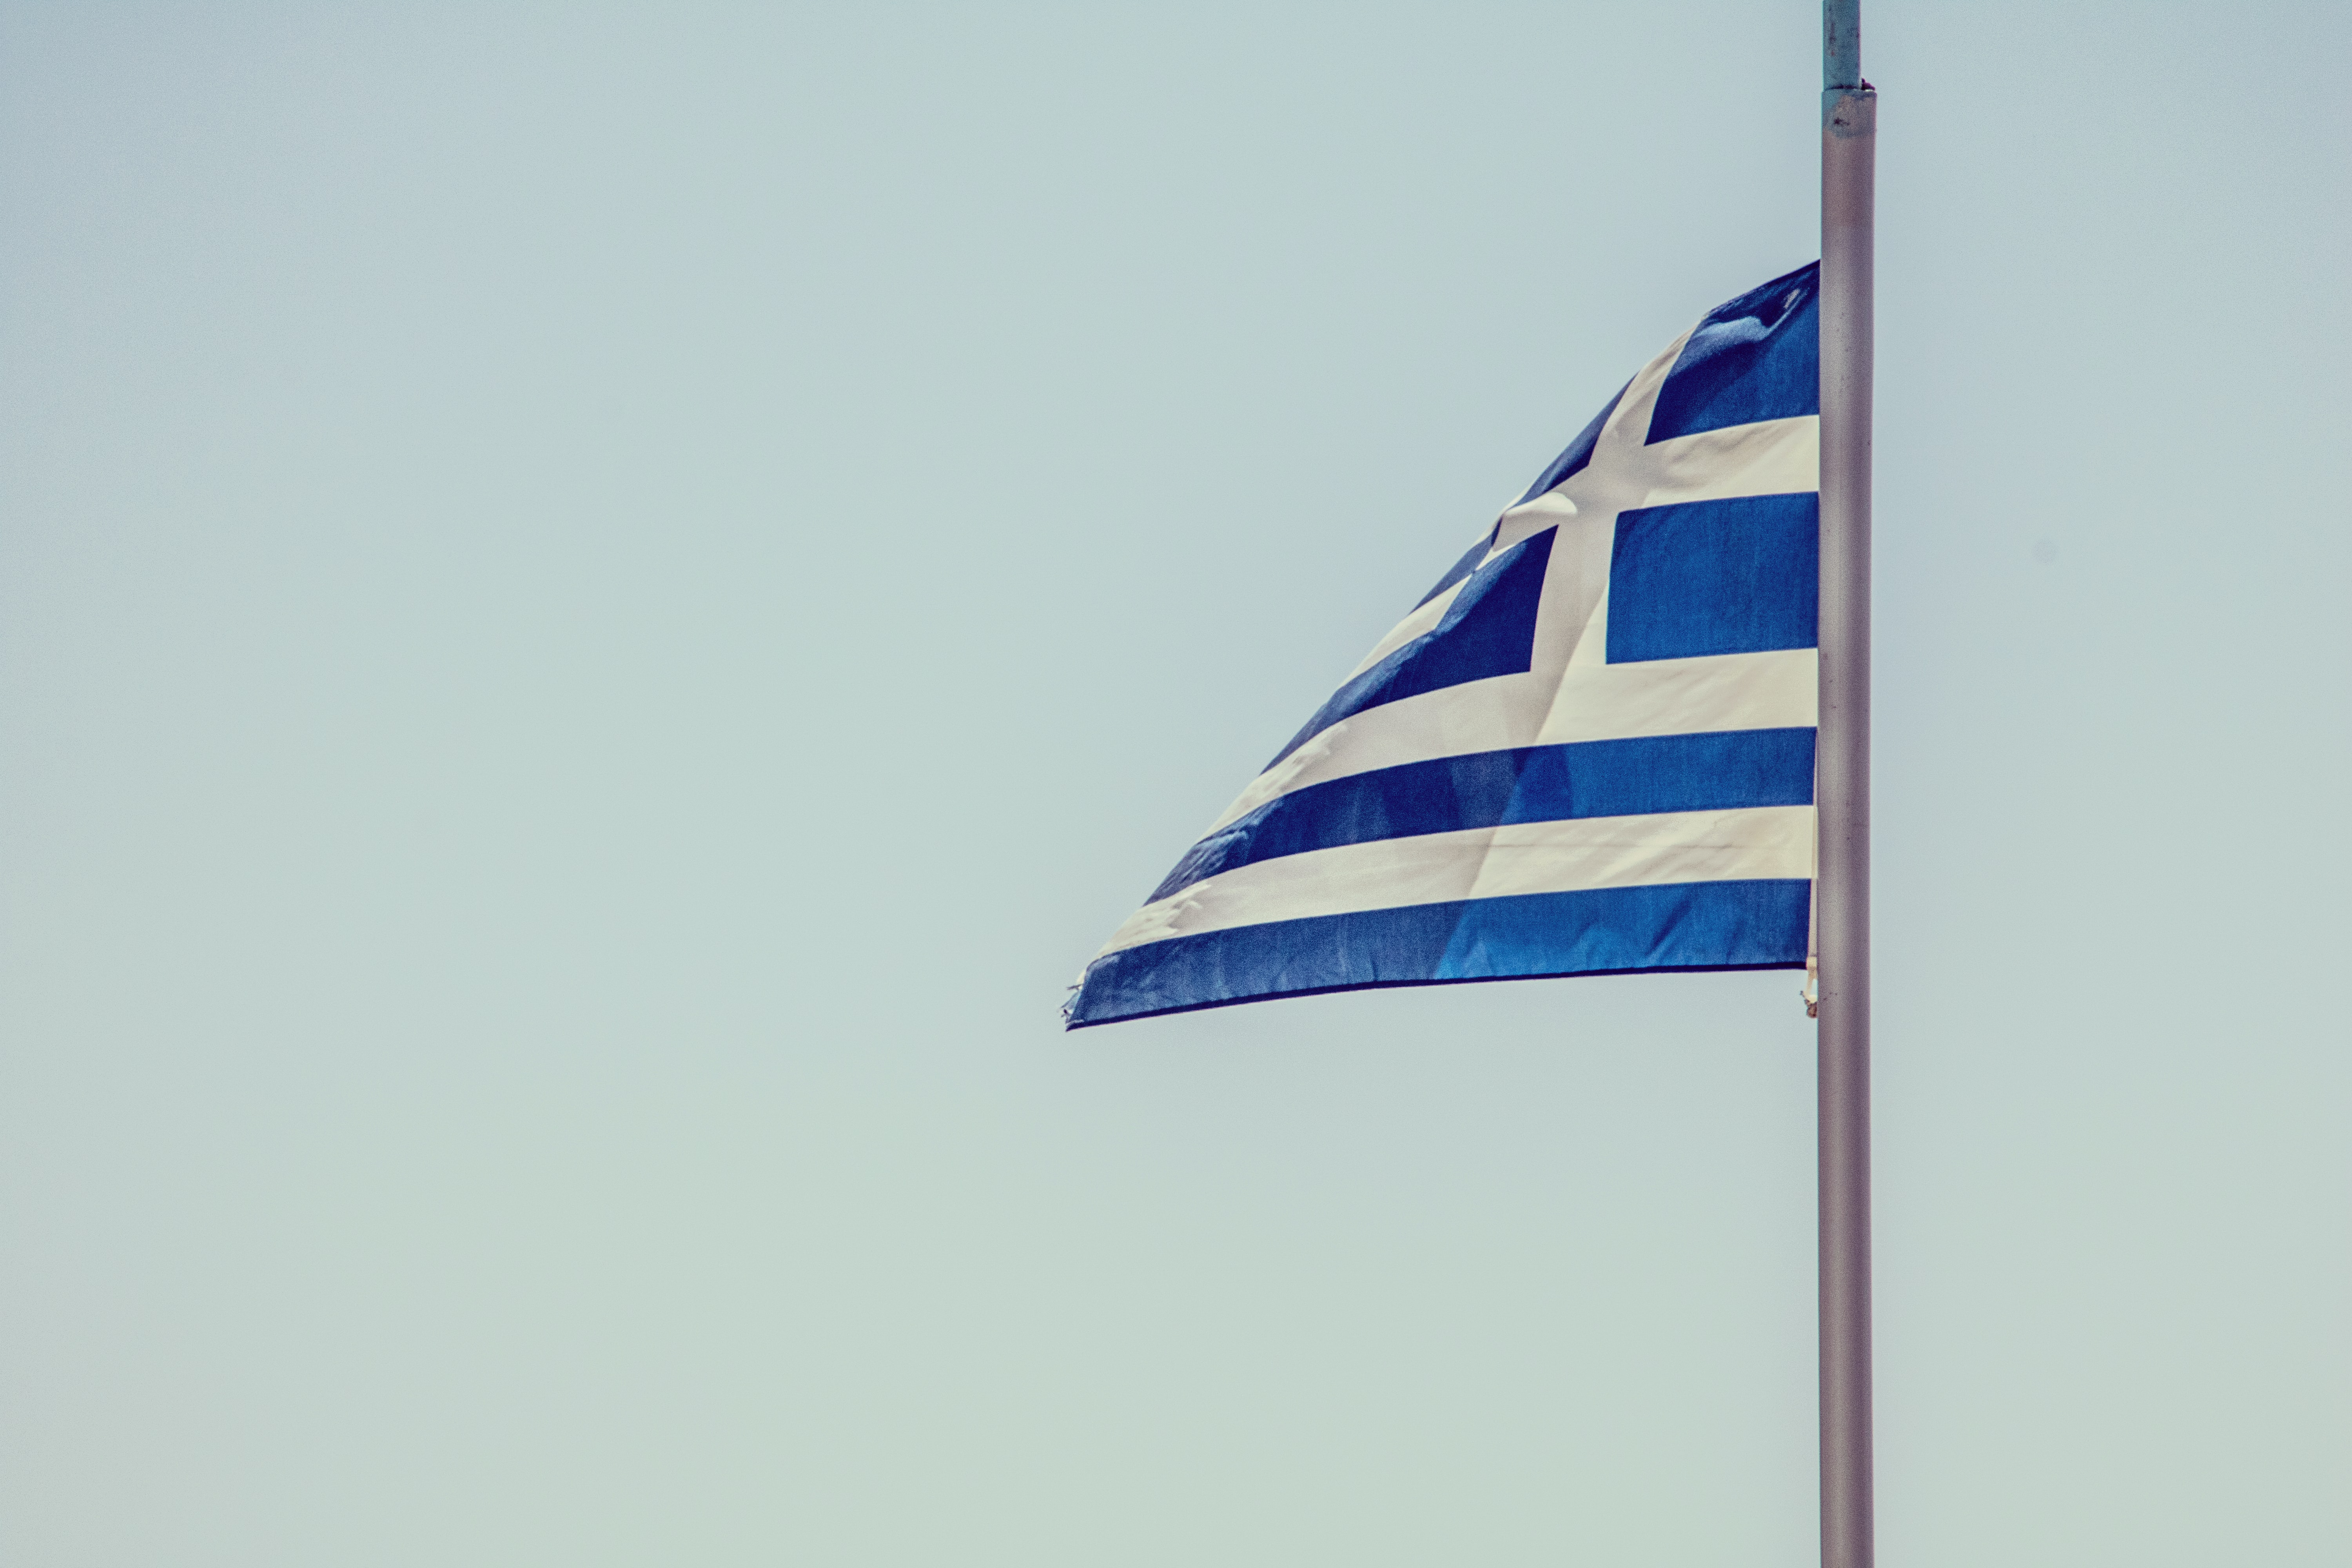 blue and white striped flag on pole